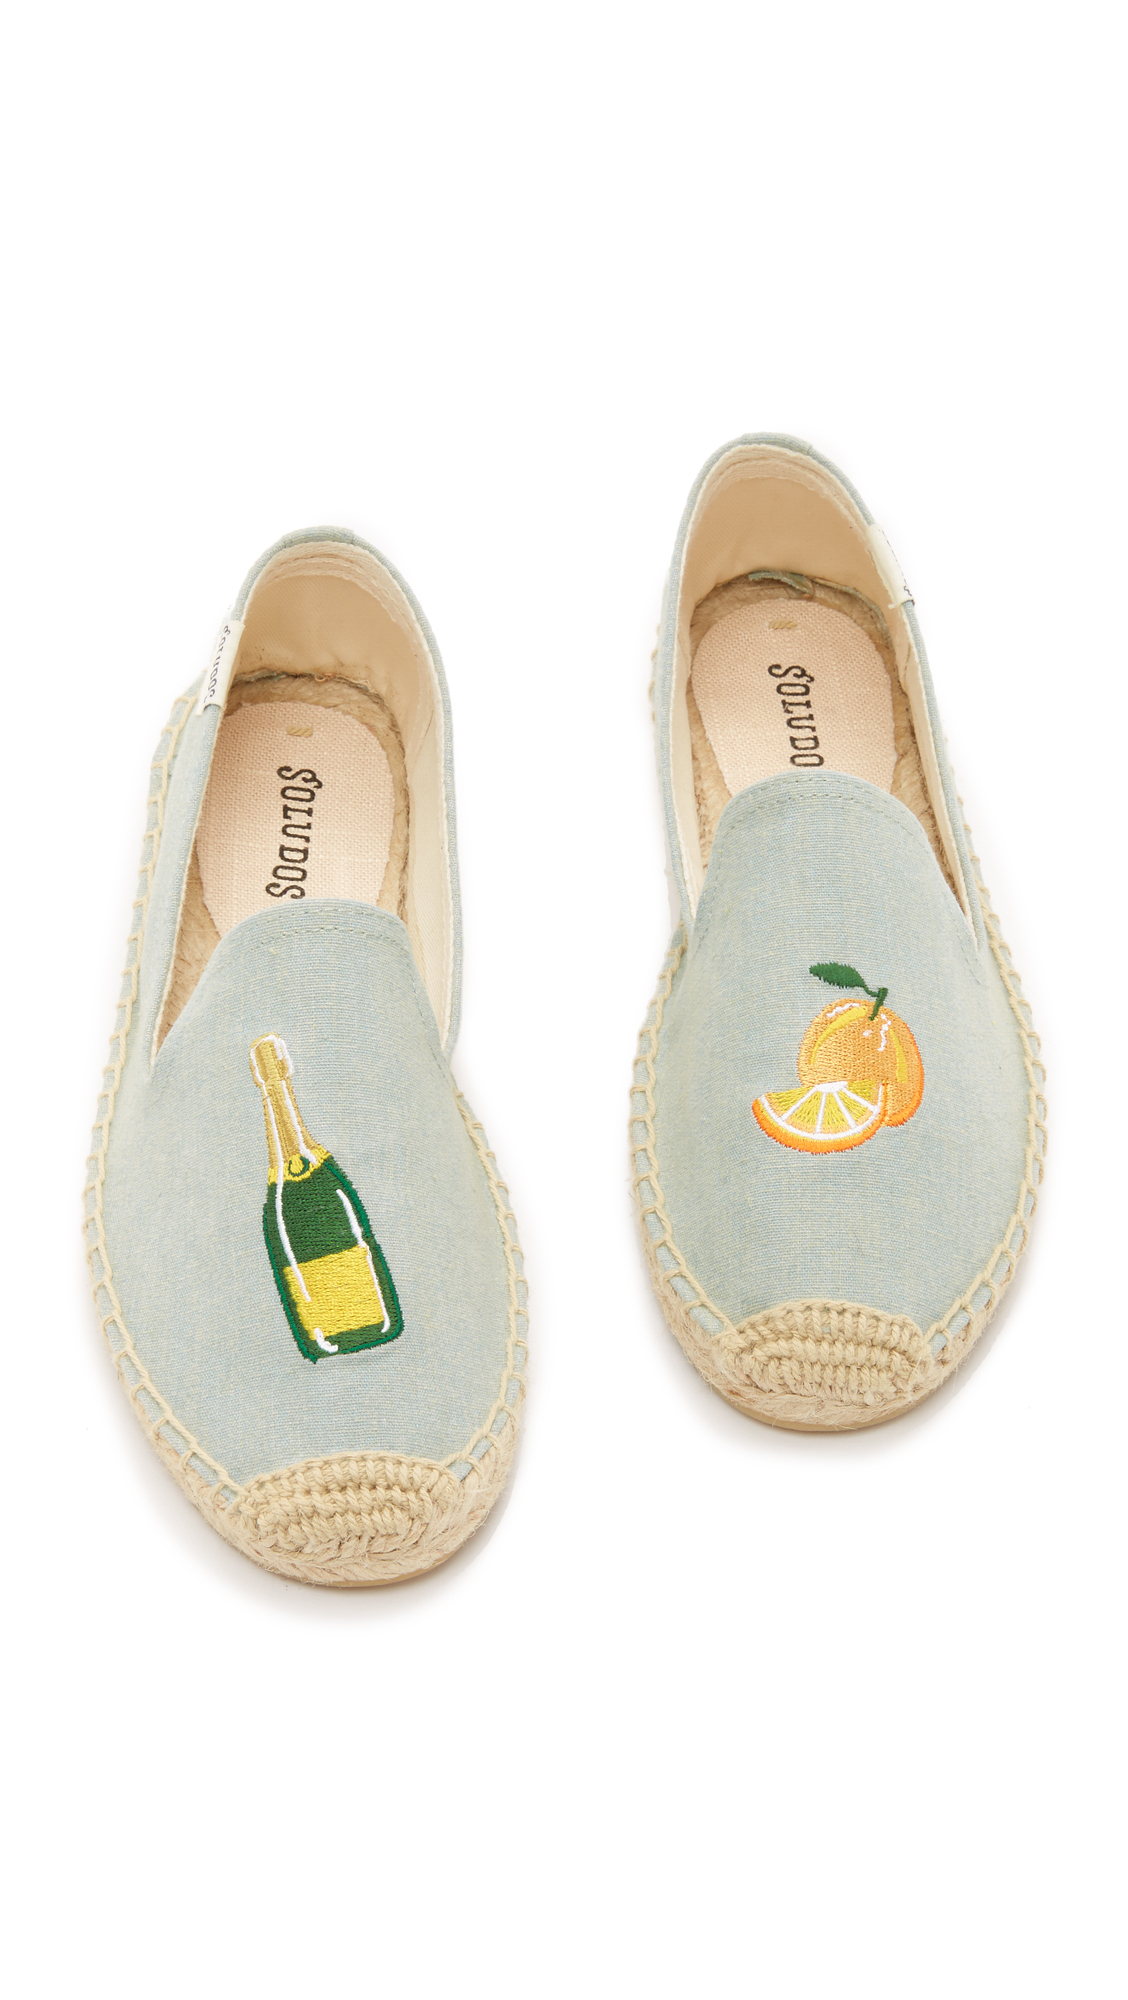 70e0e3ef8ed Lyst - Soludos Mimosa Embroidered Smoking Slipper Espadrilles in Gray